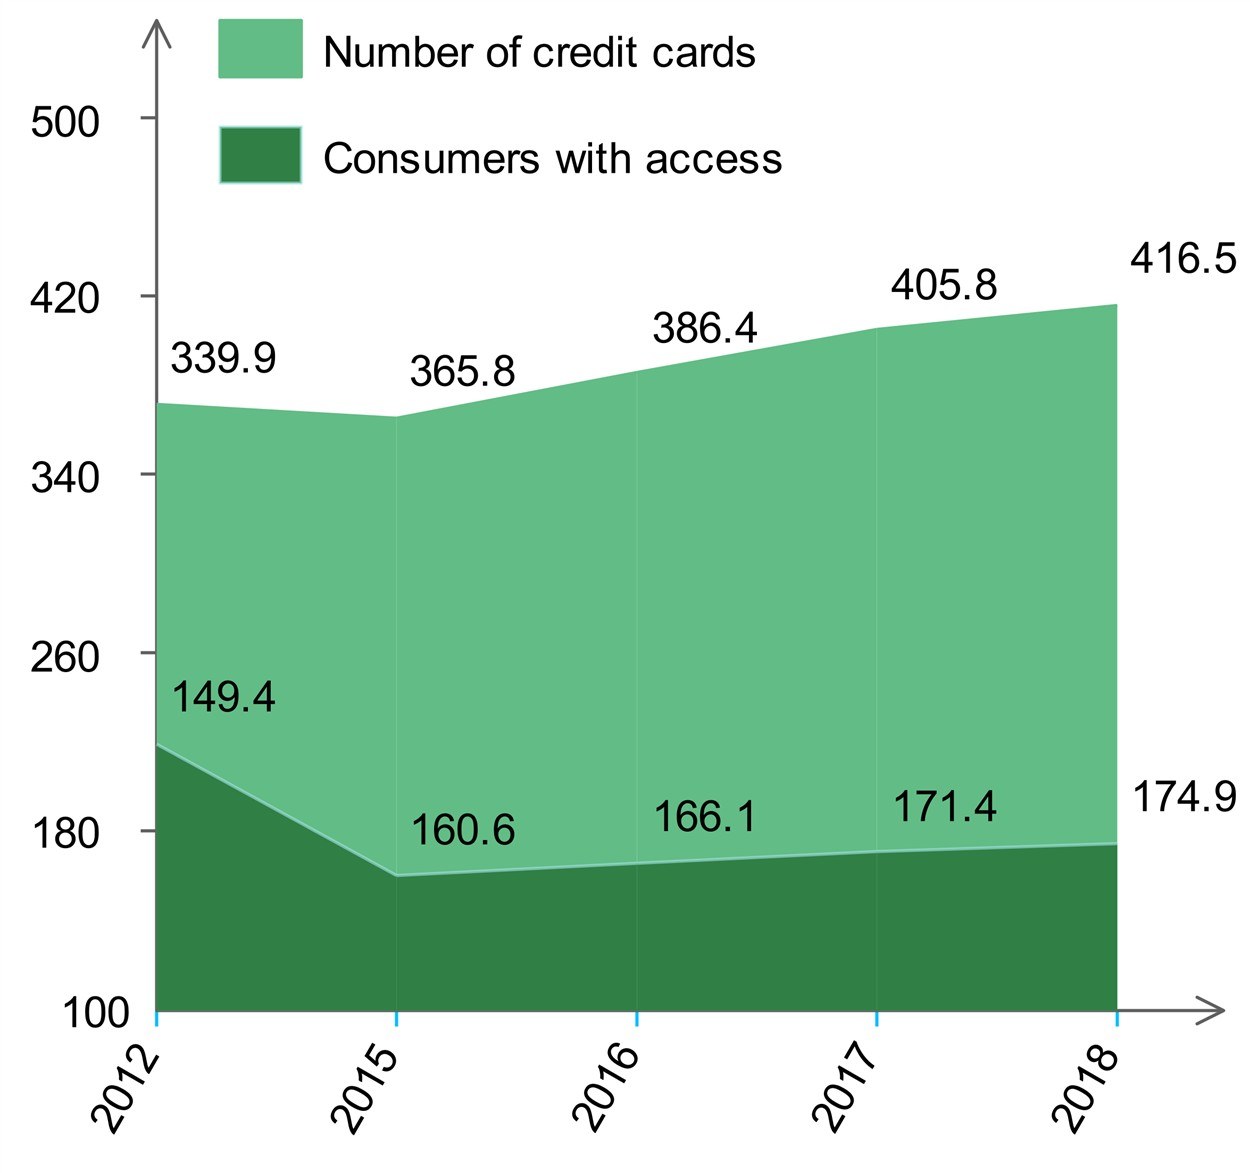 Number of credit cards versus consumers with access